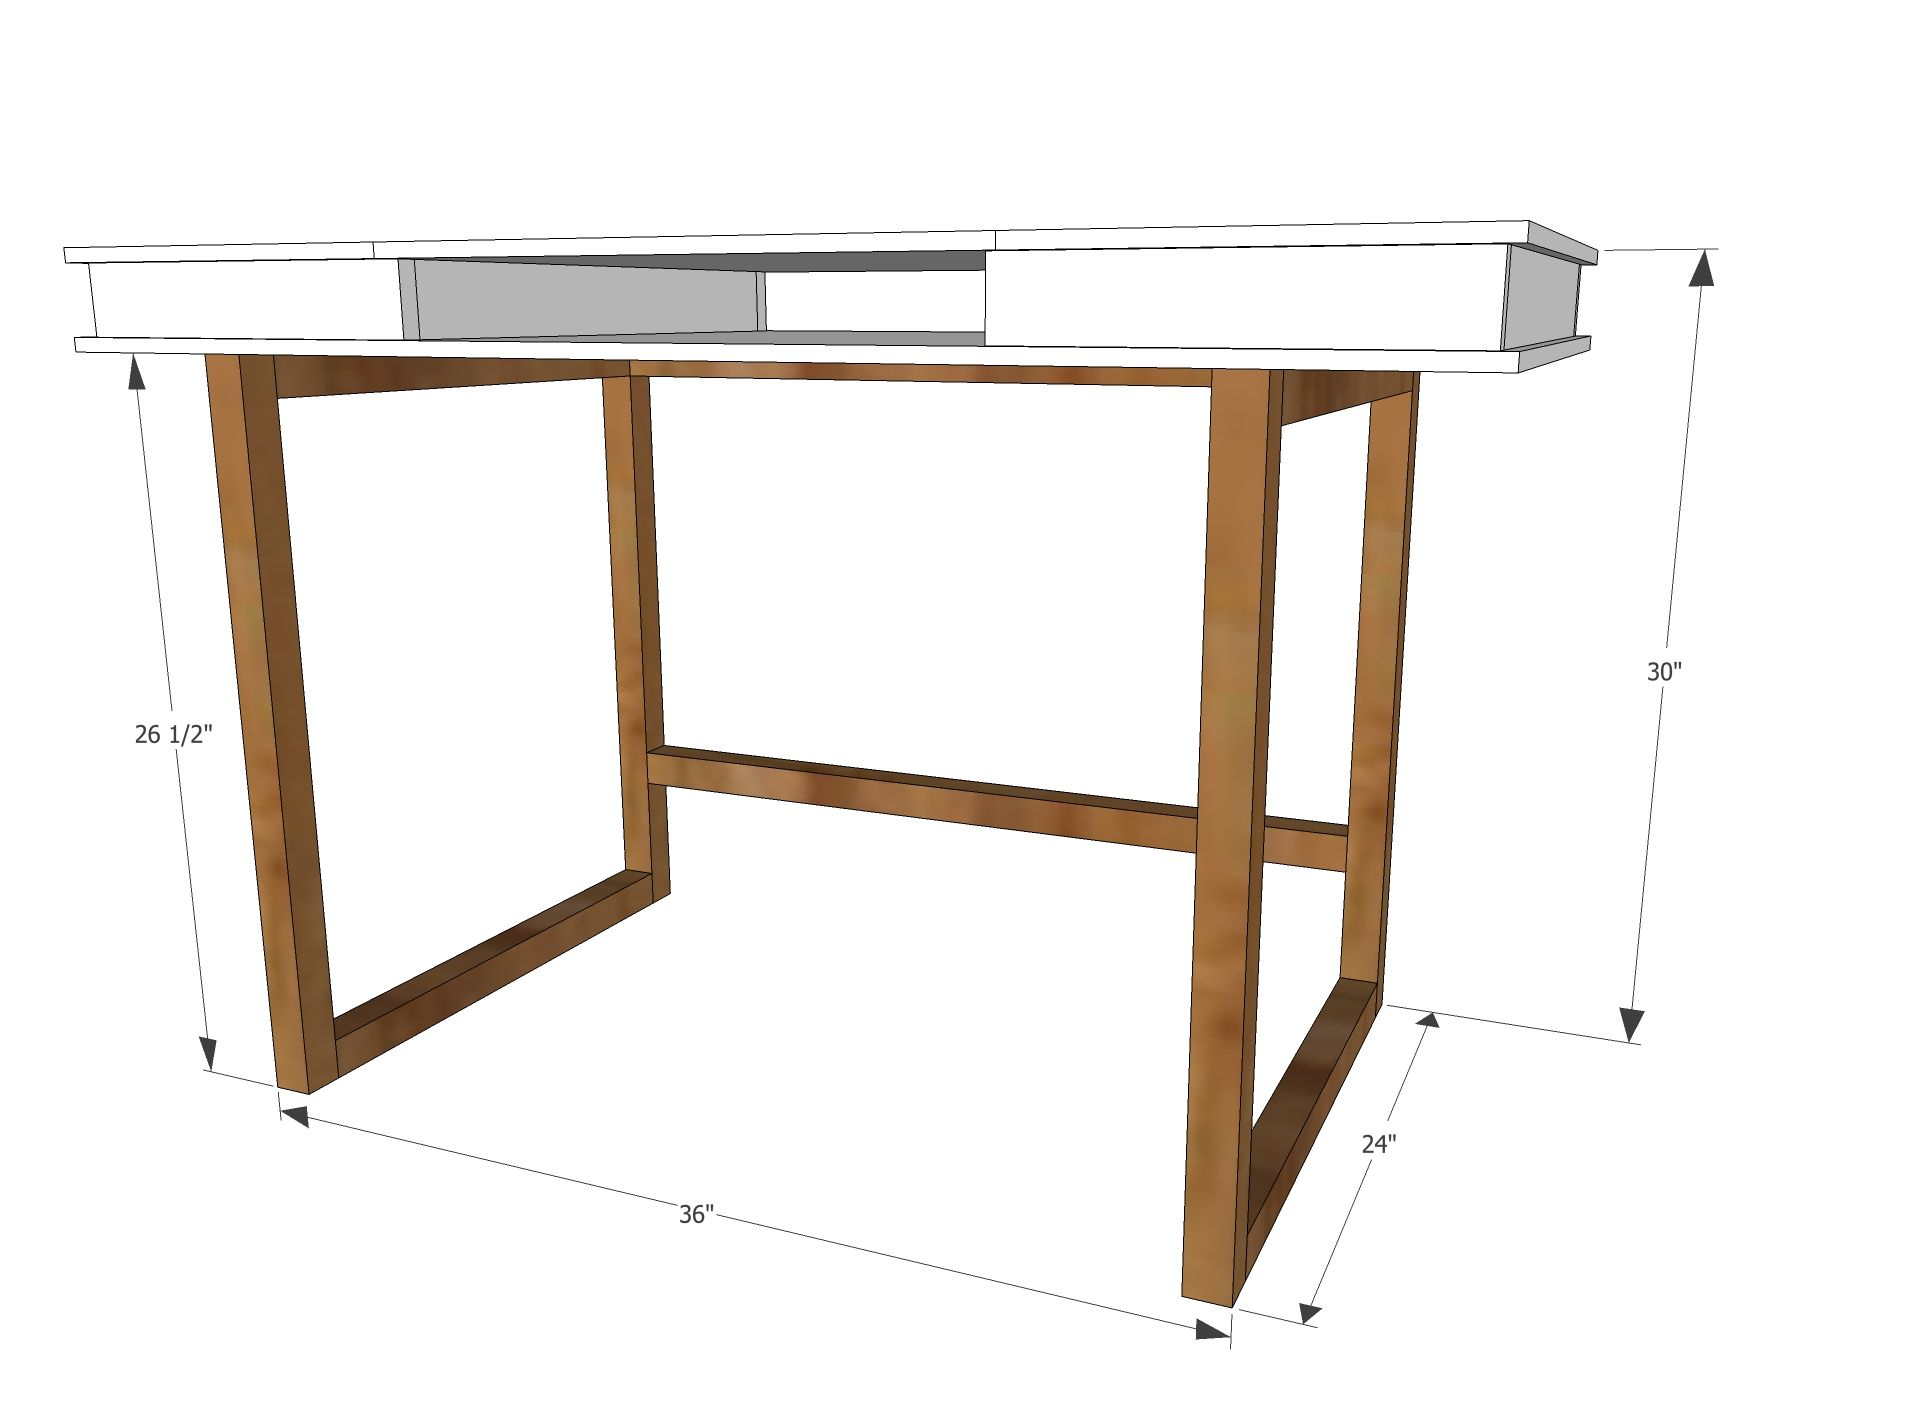 Easy Table Plans Ana White Build A Modern 2x2 Desk Base For Build Your Own Study